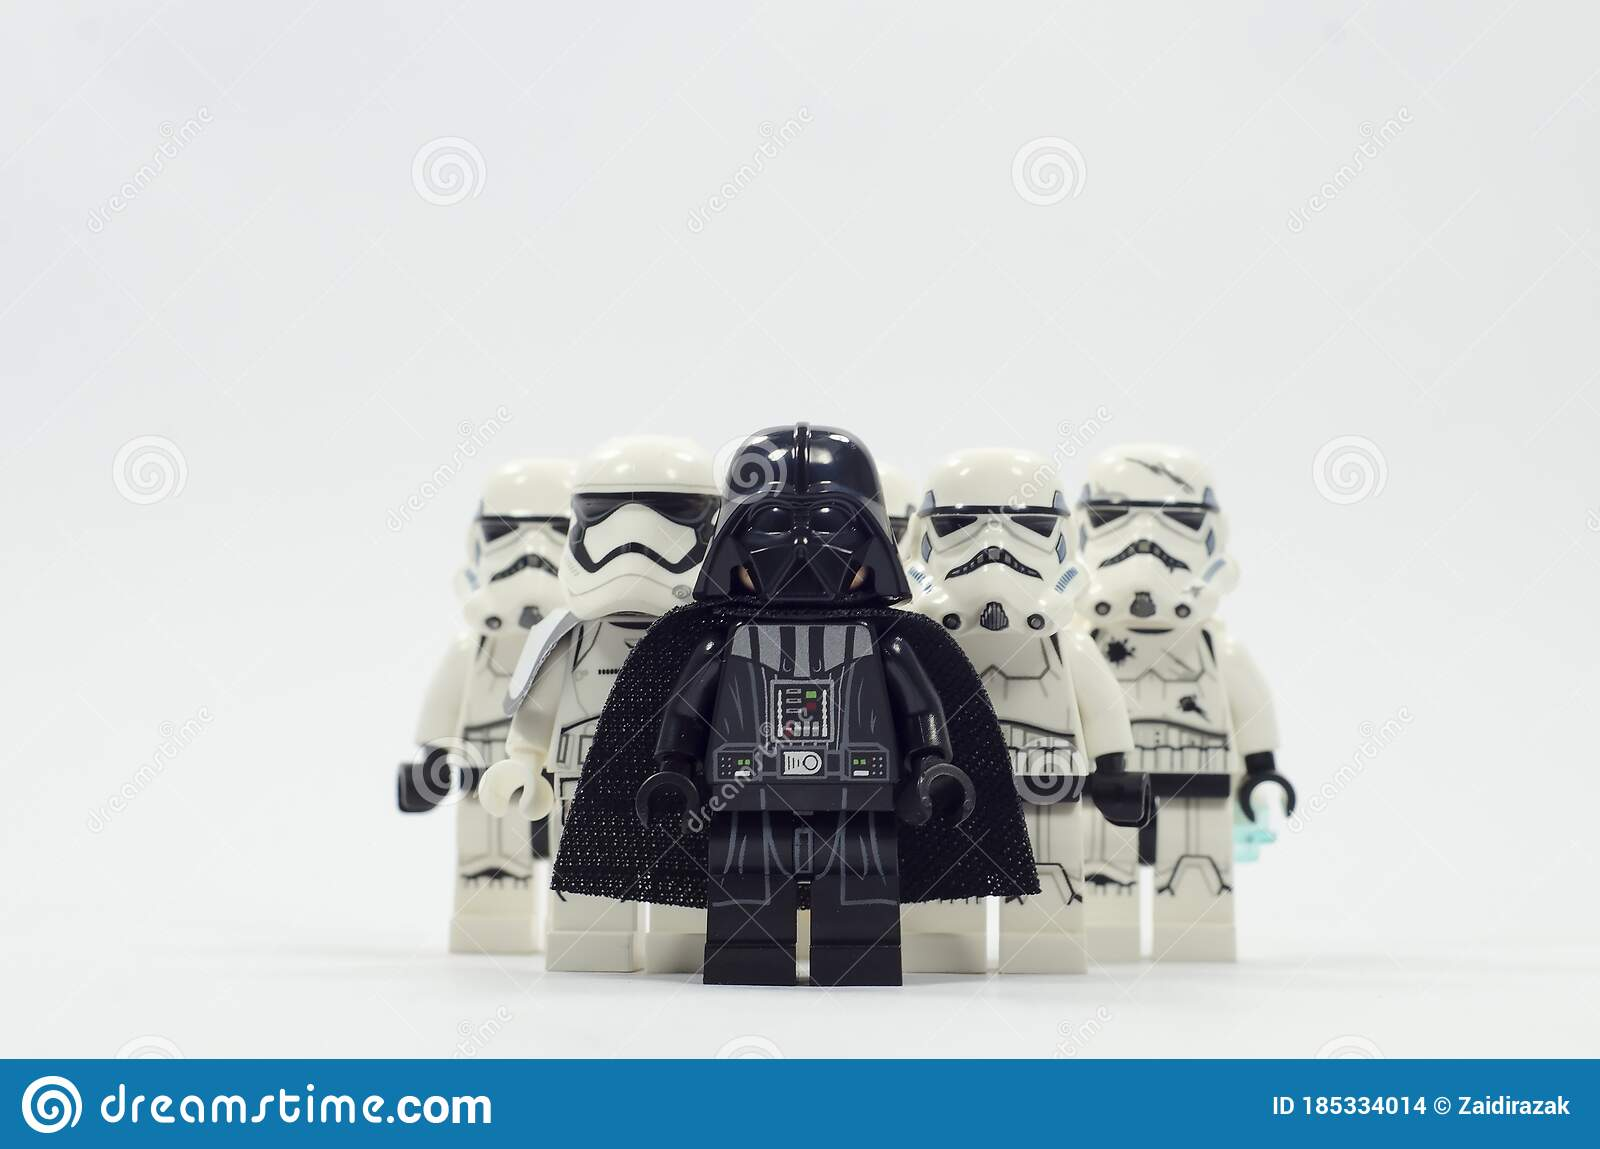 Lego Starwars Darth Vader And Clone Storm Trooper Army Editorial Stock Image Image Of Lego Action 185334014